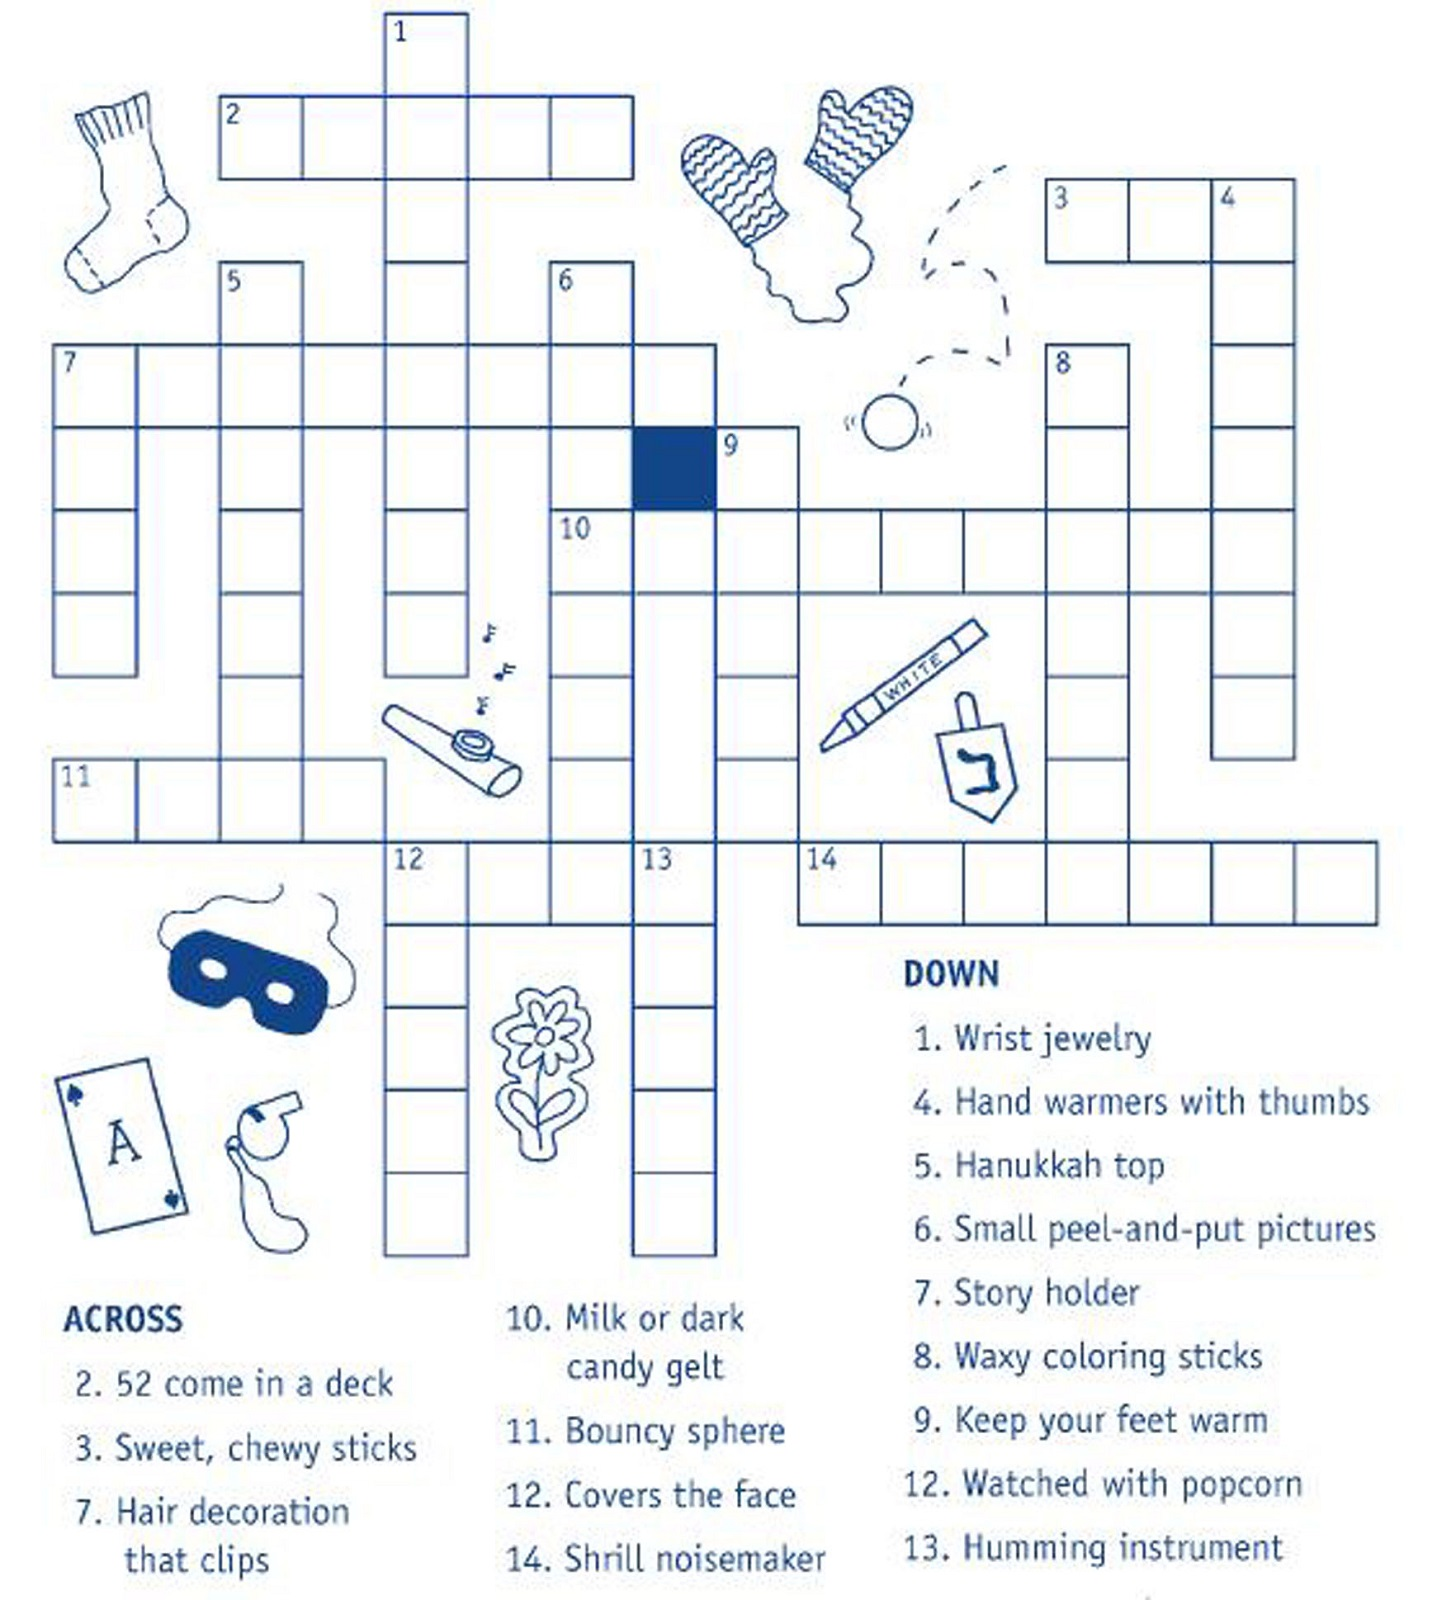 Adaptable image for printable crosswords for kids